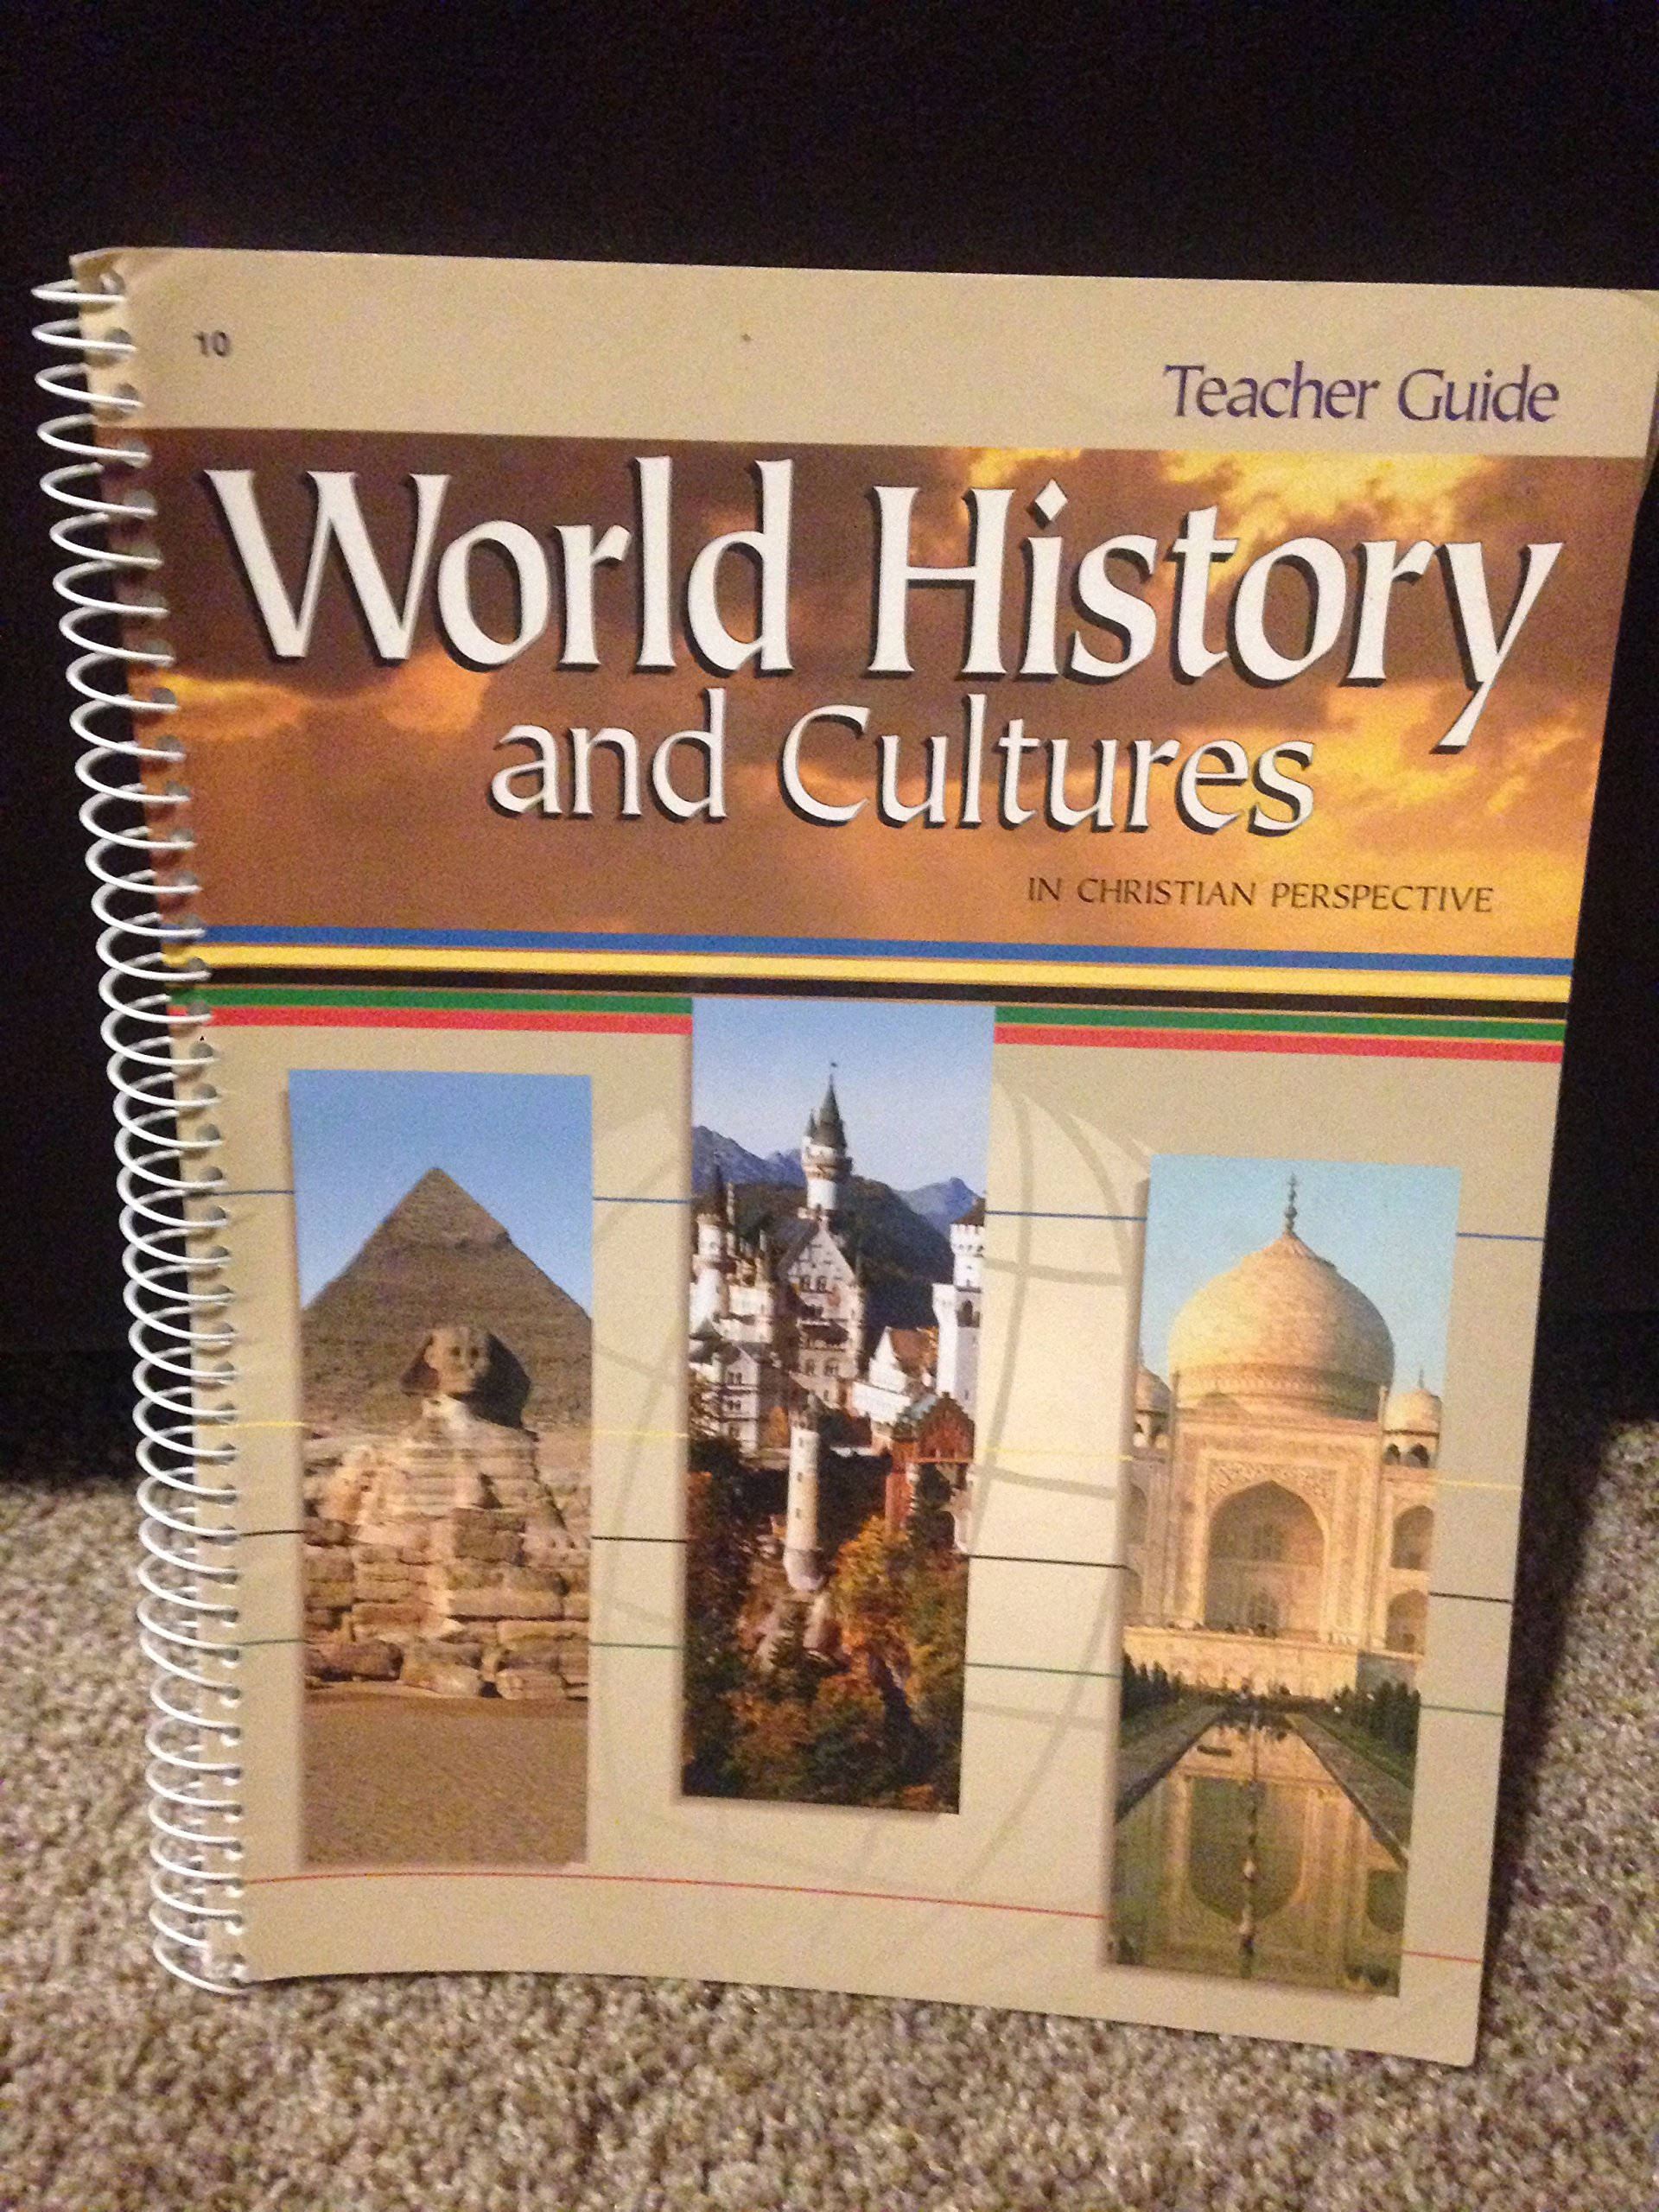 World History and Cultures in Christian Perspective (Teacher Guide): Kevin  Hozey, Brian Ashbaugh: Amazon.com: Books